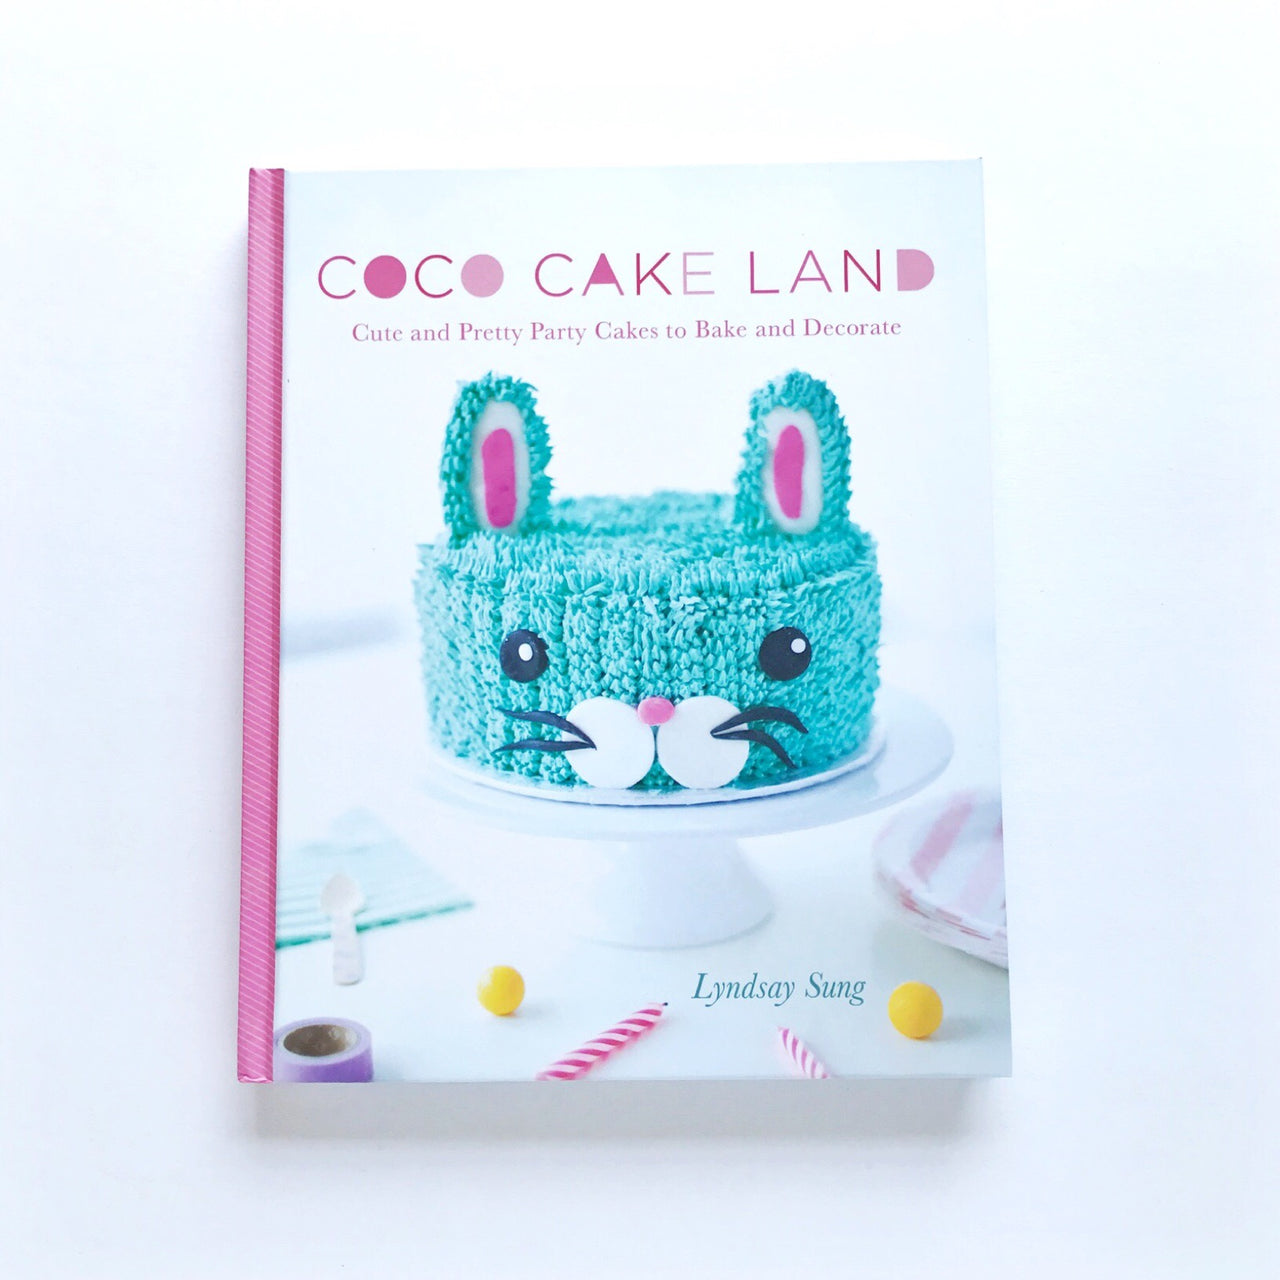 coco cake land (available Aug 14)